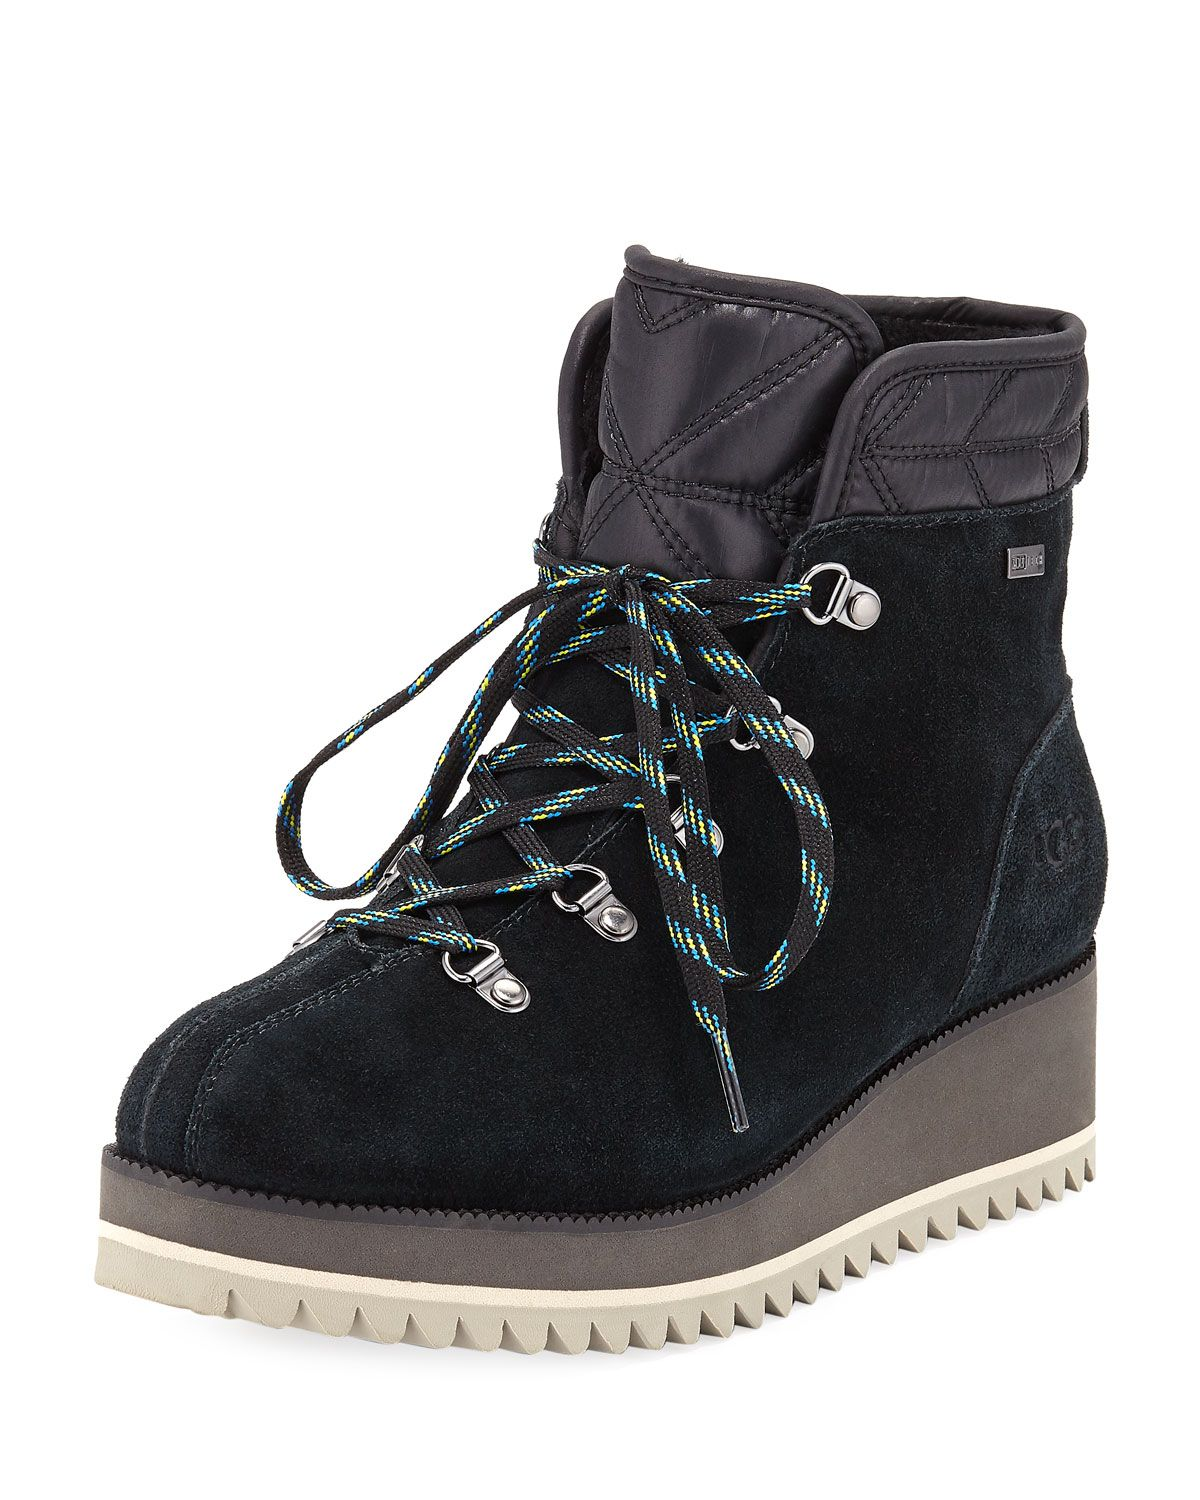 89cd3c9ee Birch Lace-Up Wedge Hiker Booties Lace Up Wedges